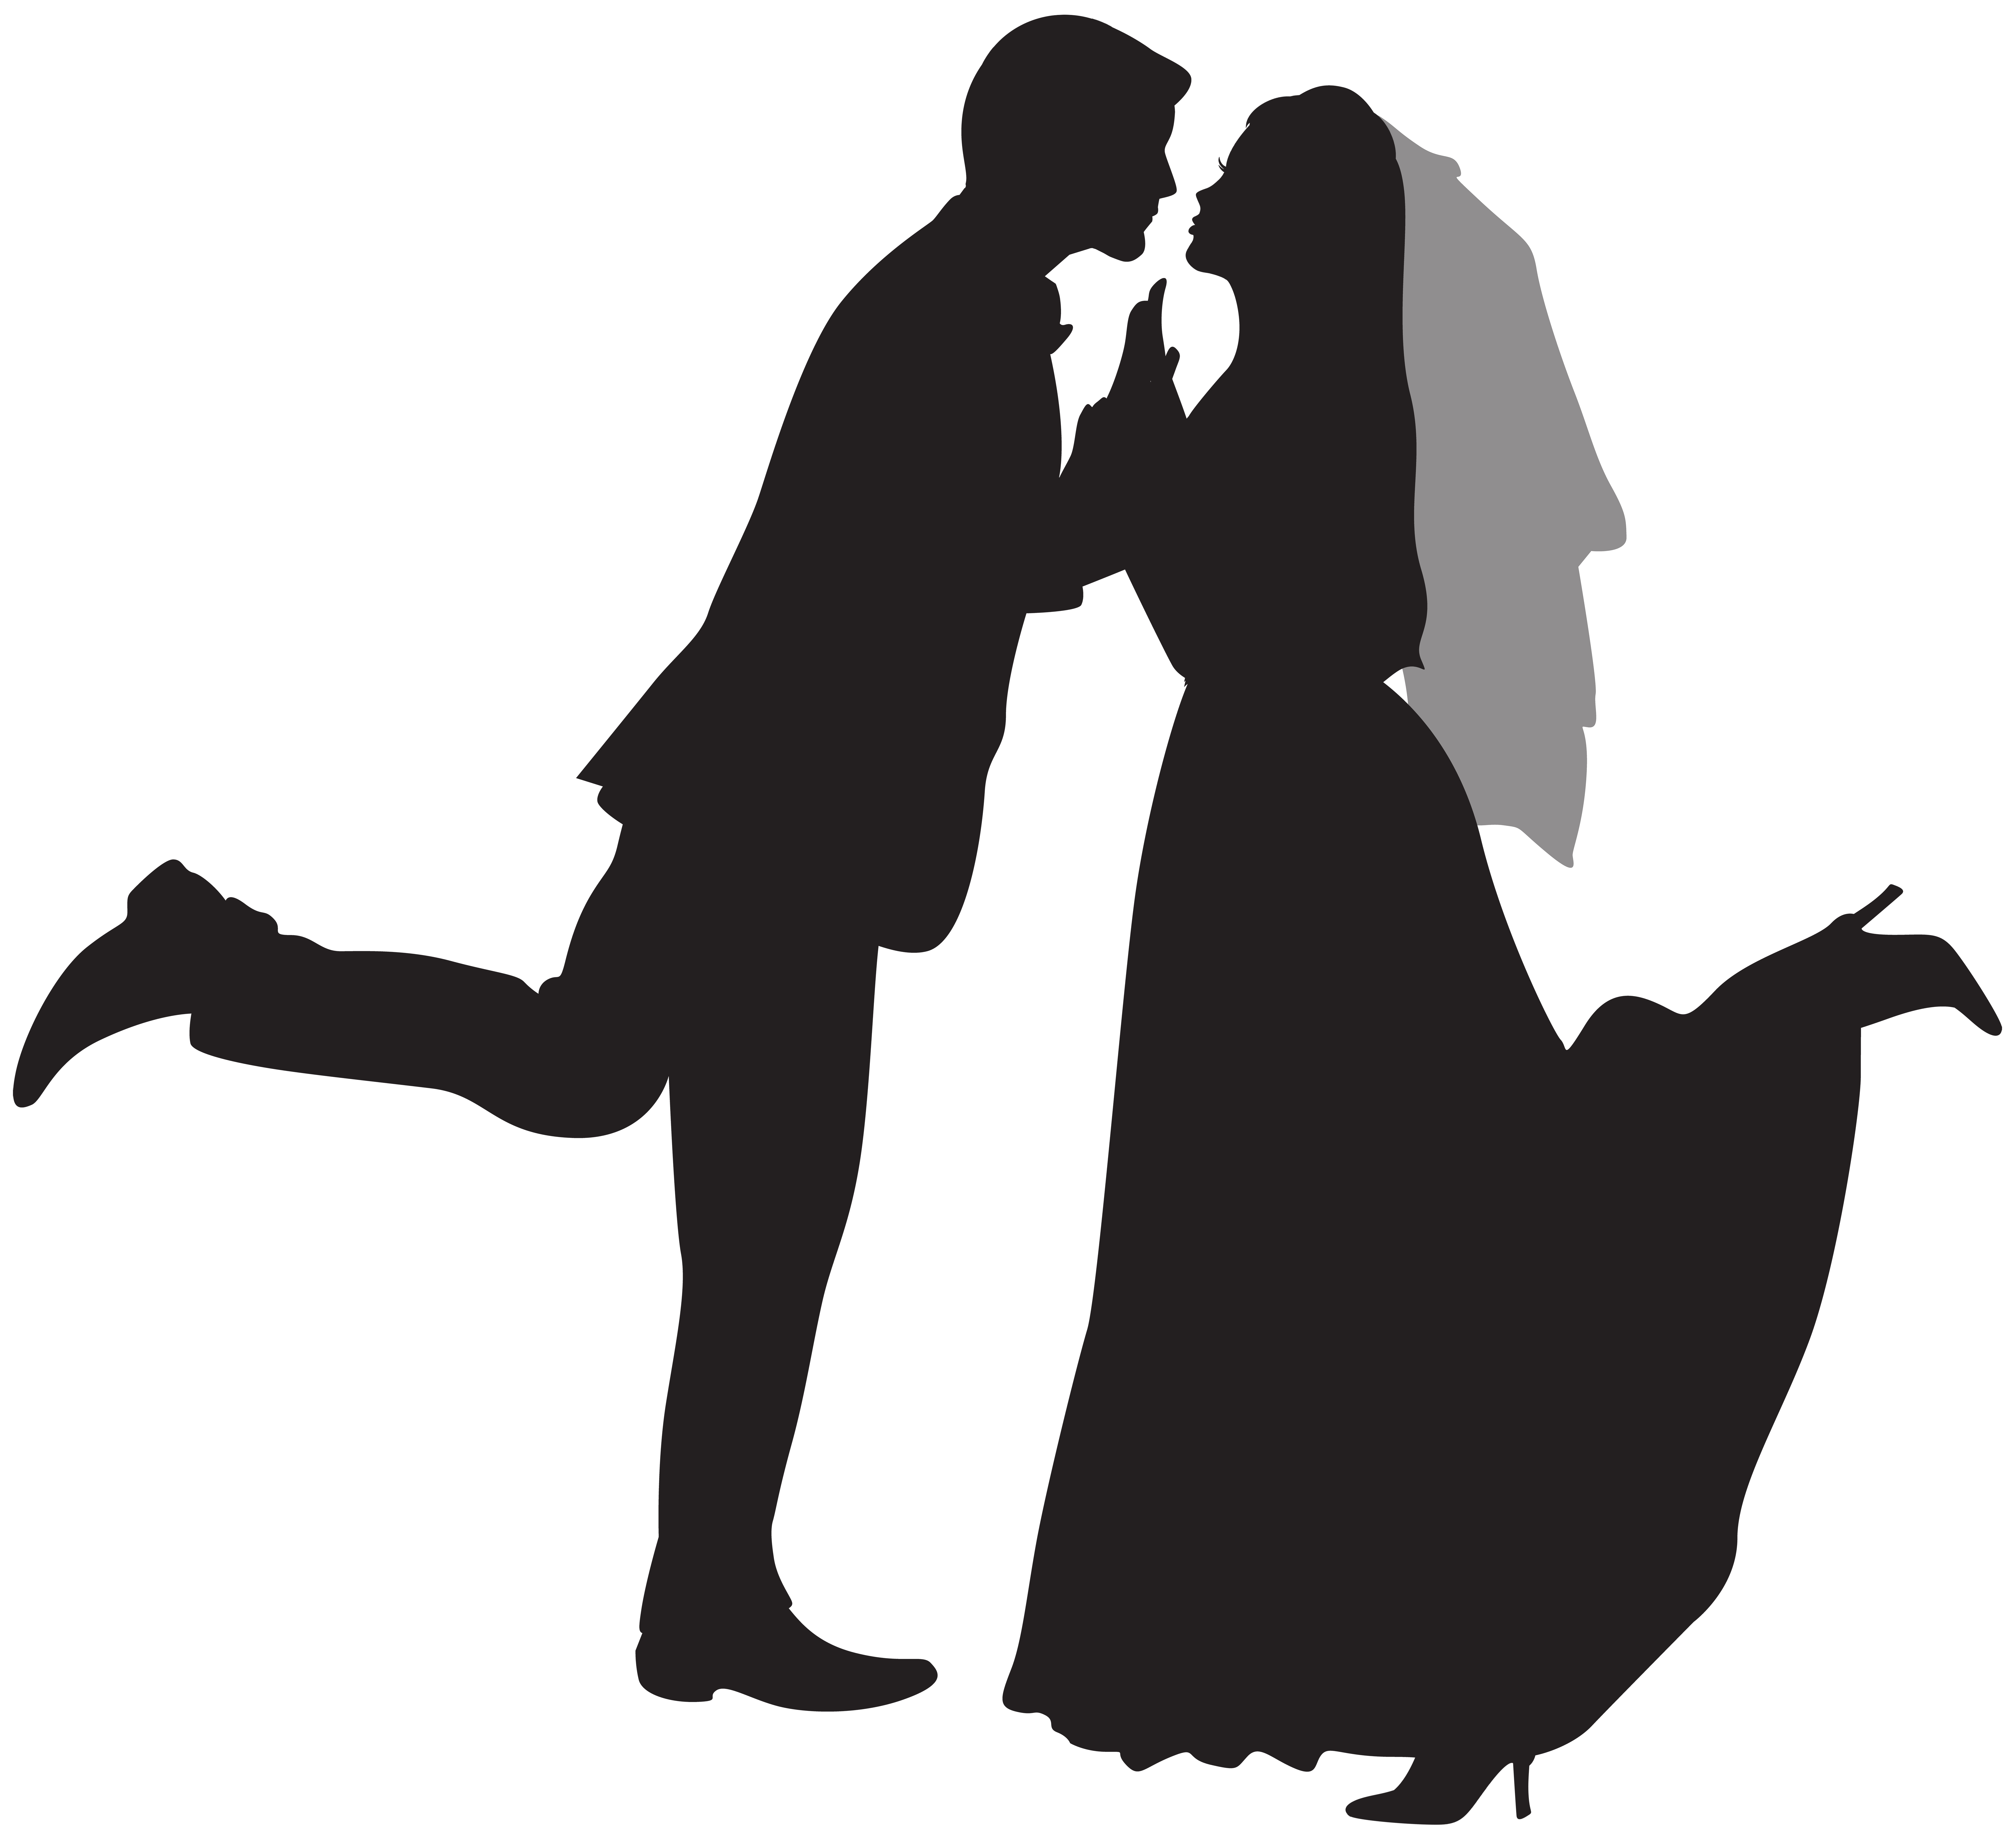 Groom And Bride Silhouette PNG Transparent Image